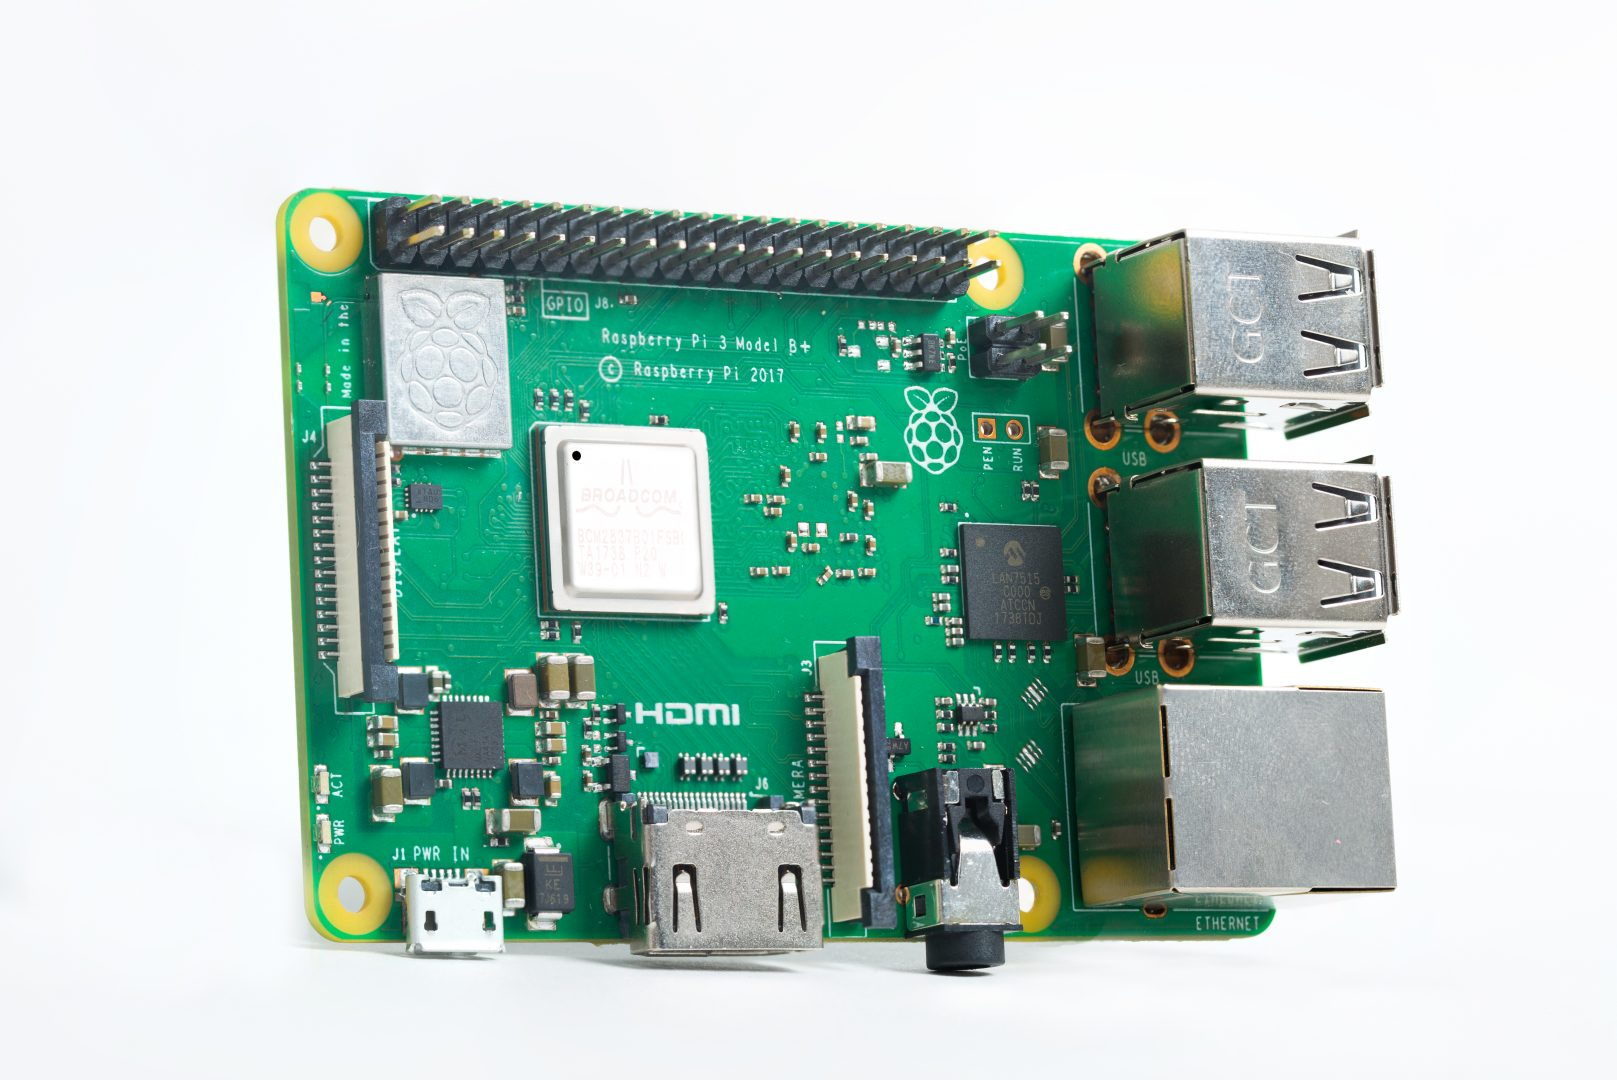 How to Compile MPTCP Linux Kernel on Raspberry Pi 2 and